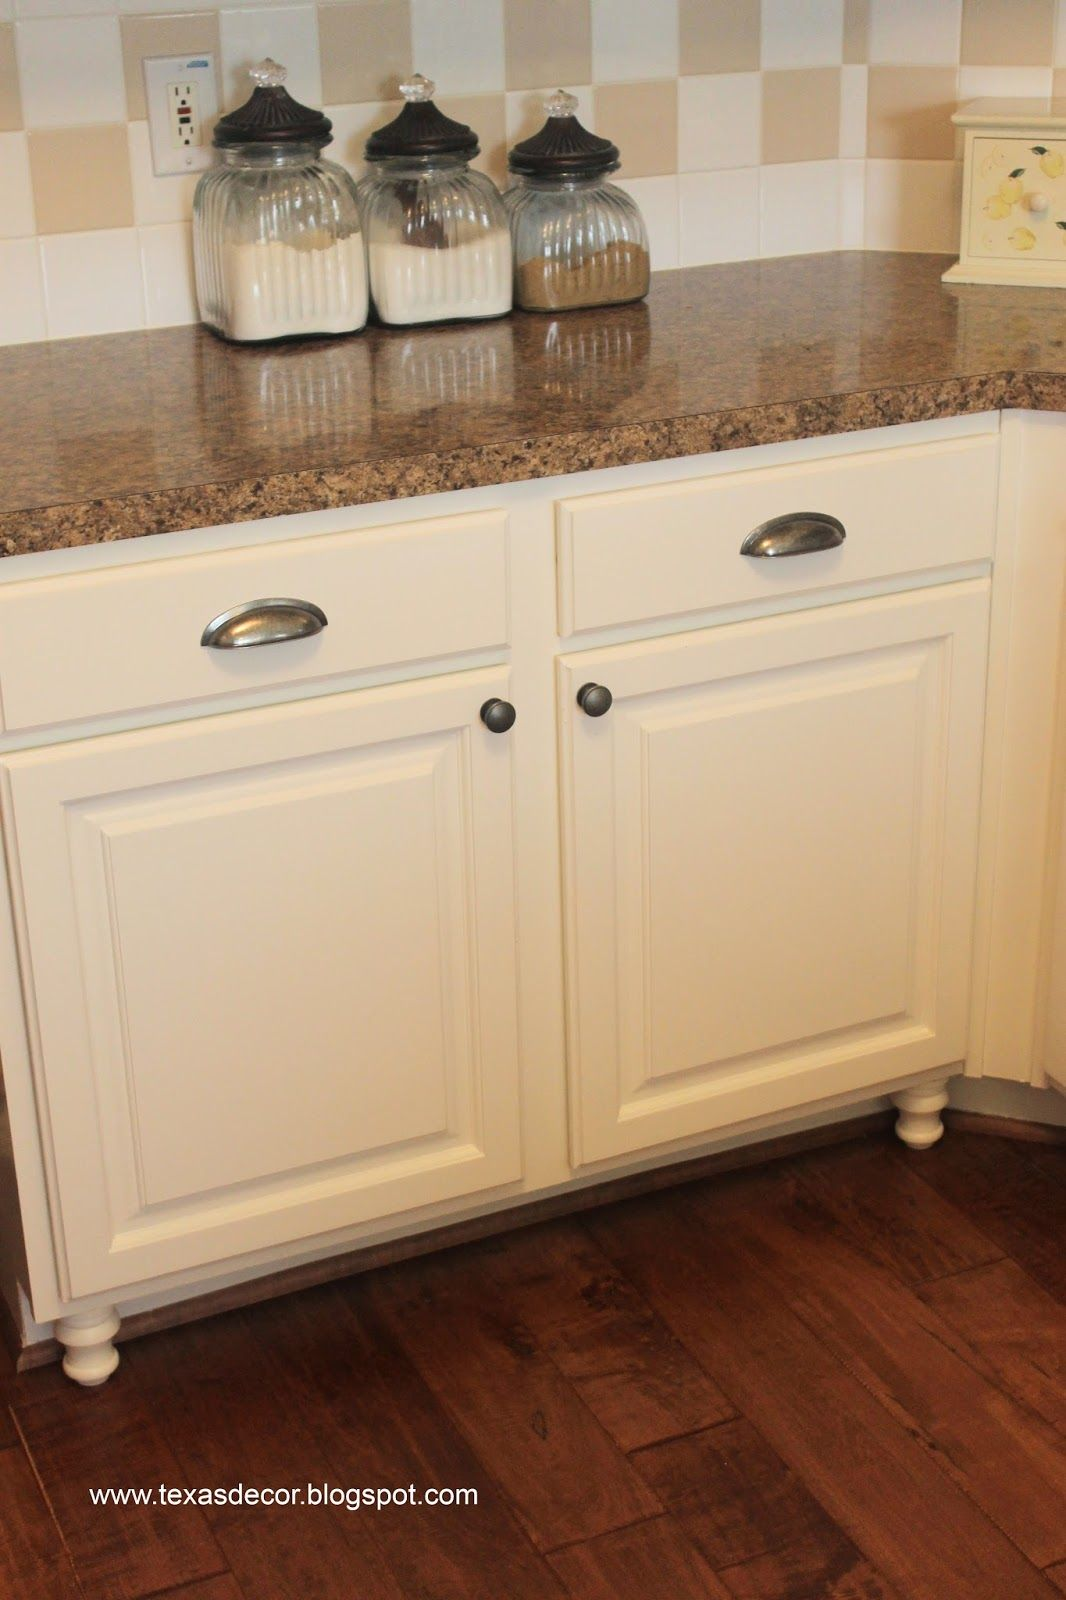 Texas Decor Painted Kitchen Cabinet Reveal Kitchen Paint Kitchen Painting Kitchen Cabinets